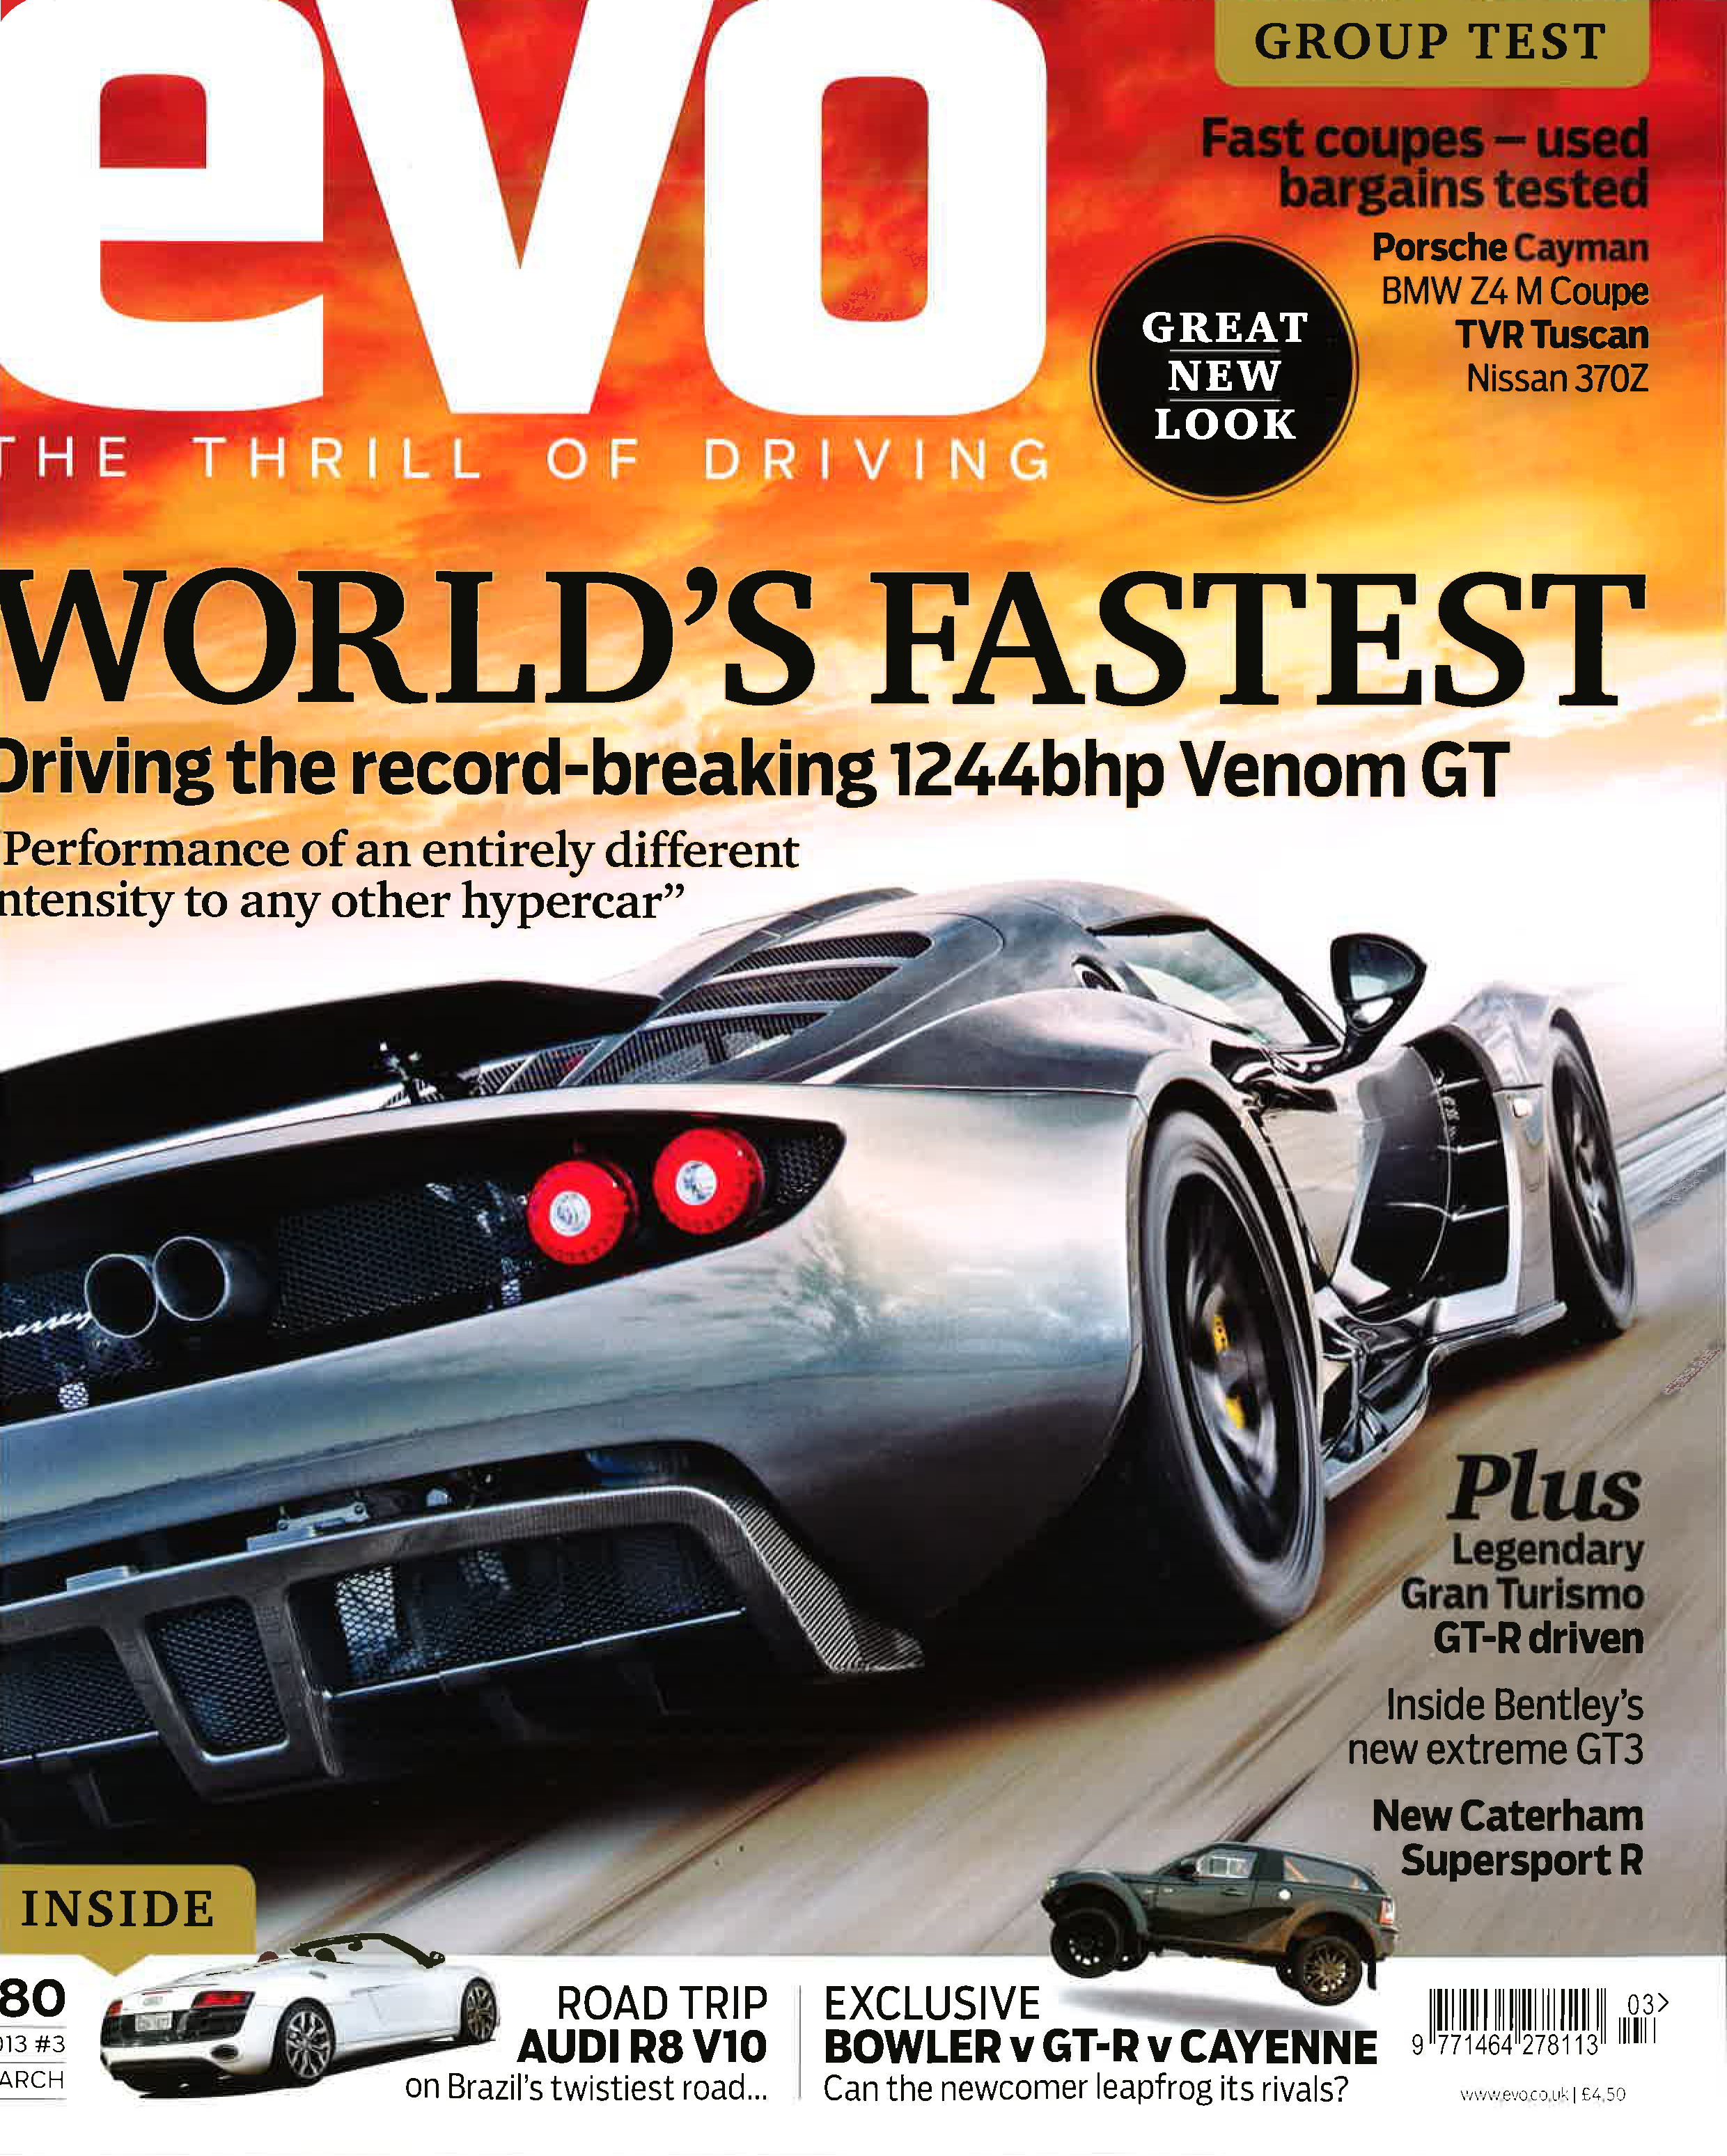 EVO Magazine March 2013